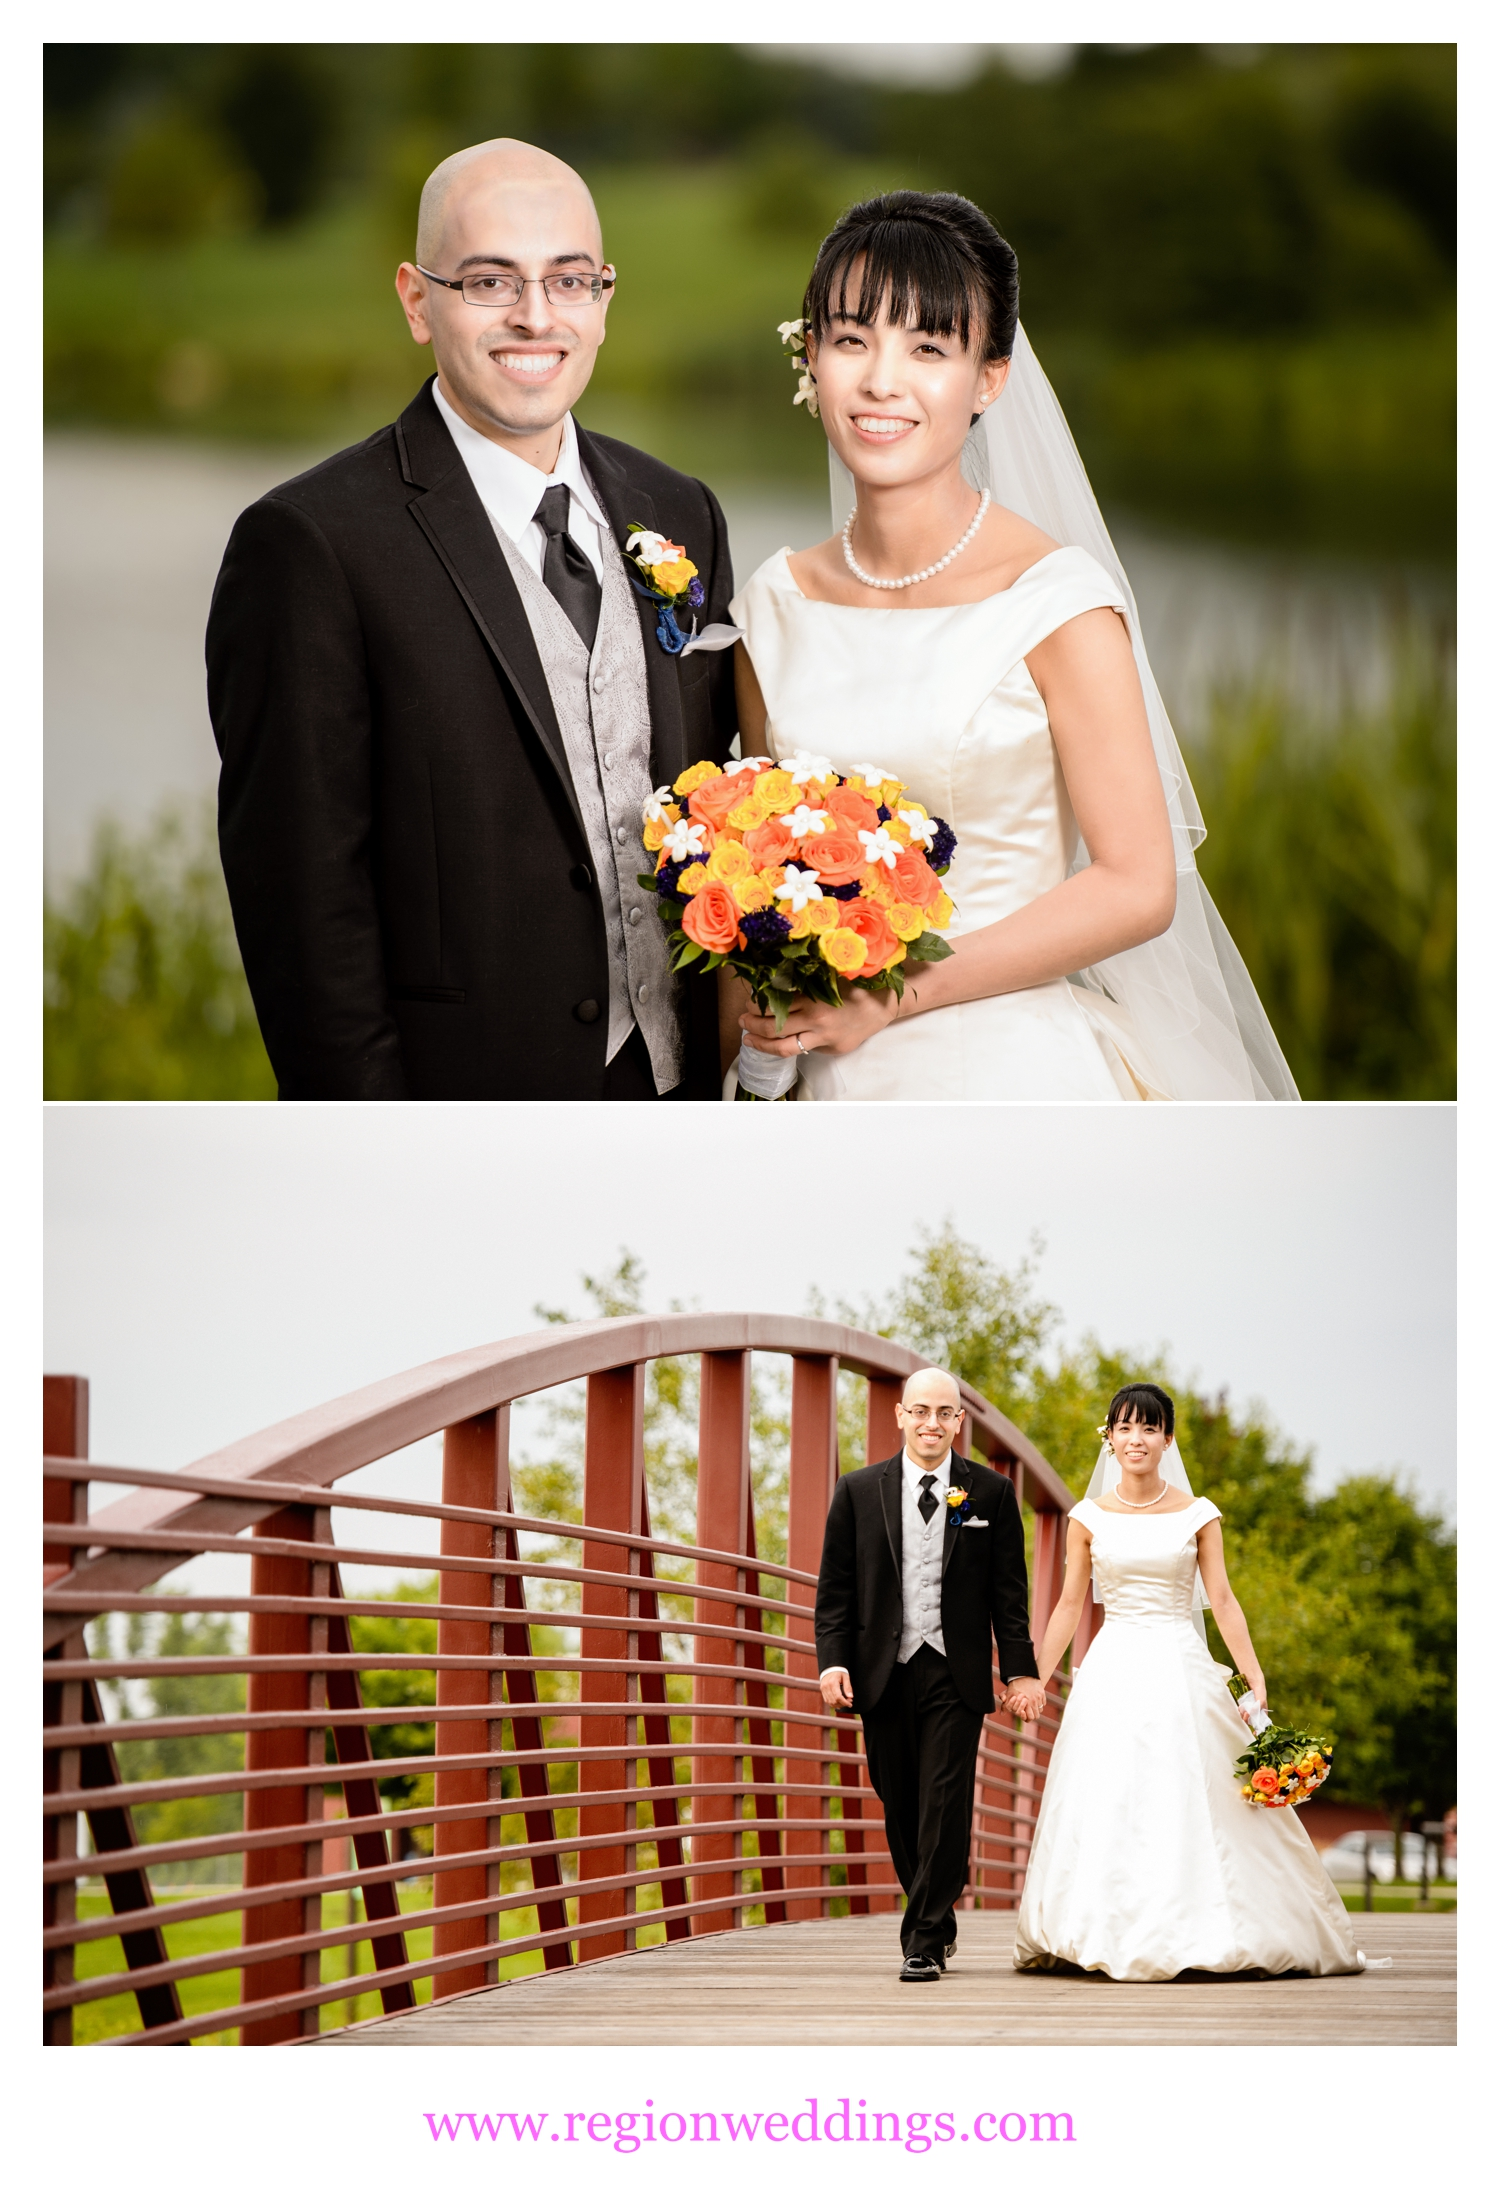 The bride and groom visit the bridges overlooking the lake at Centennial Park.